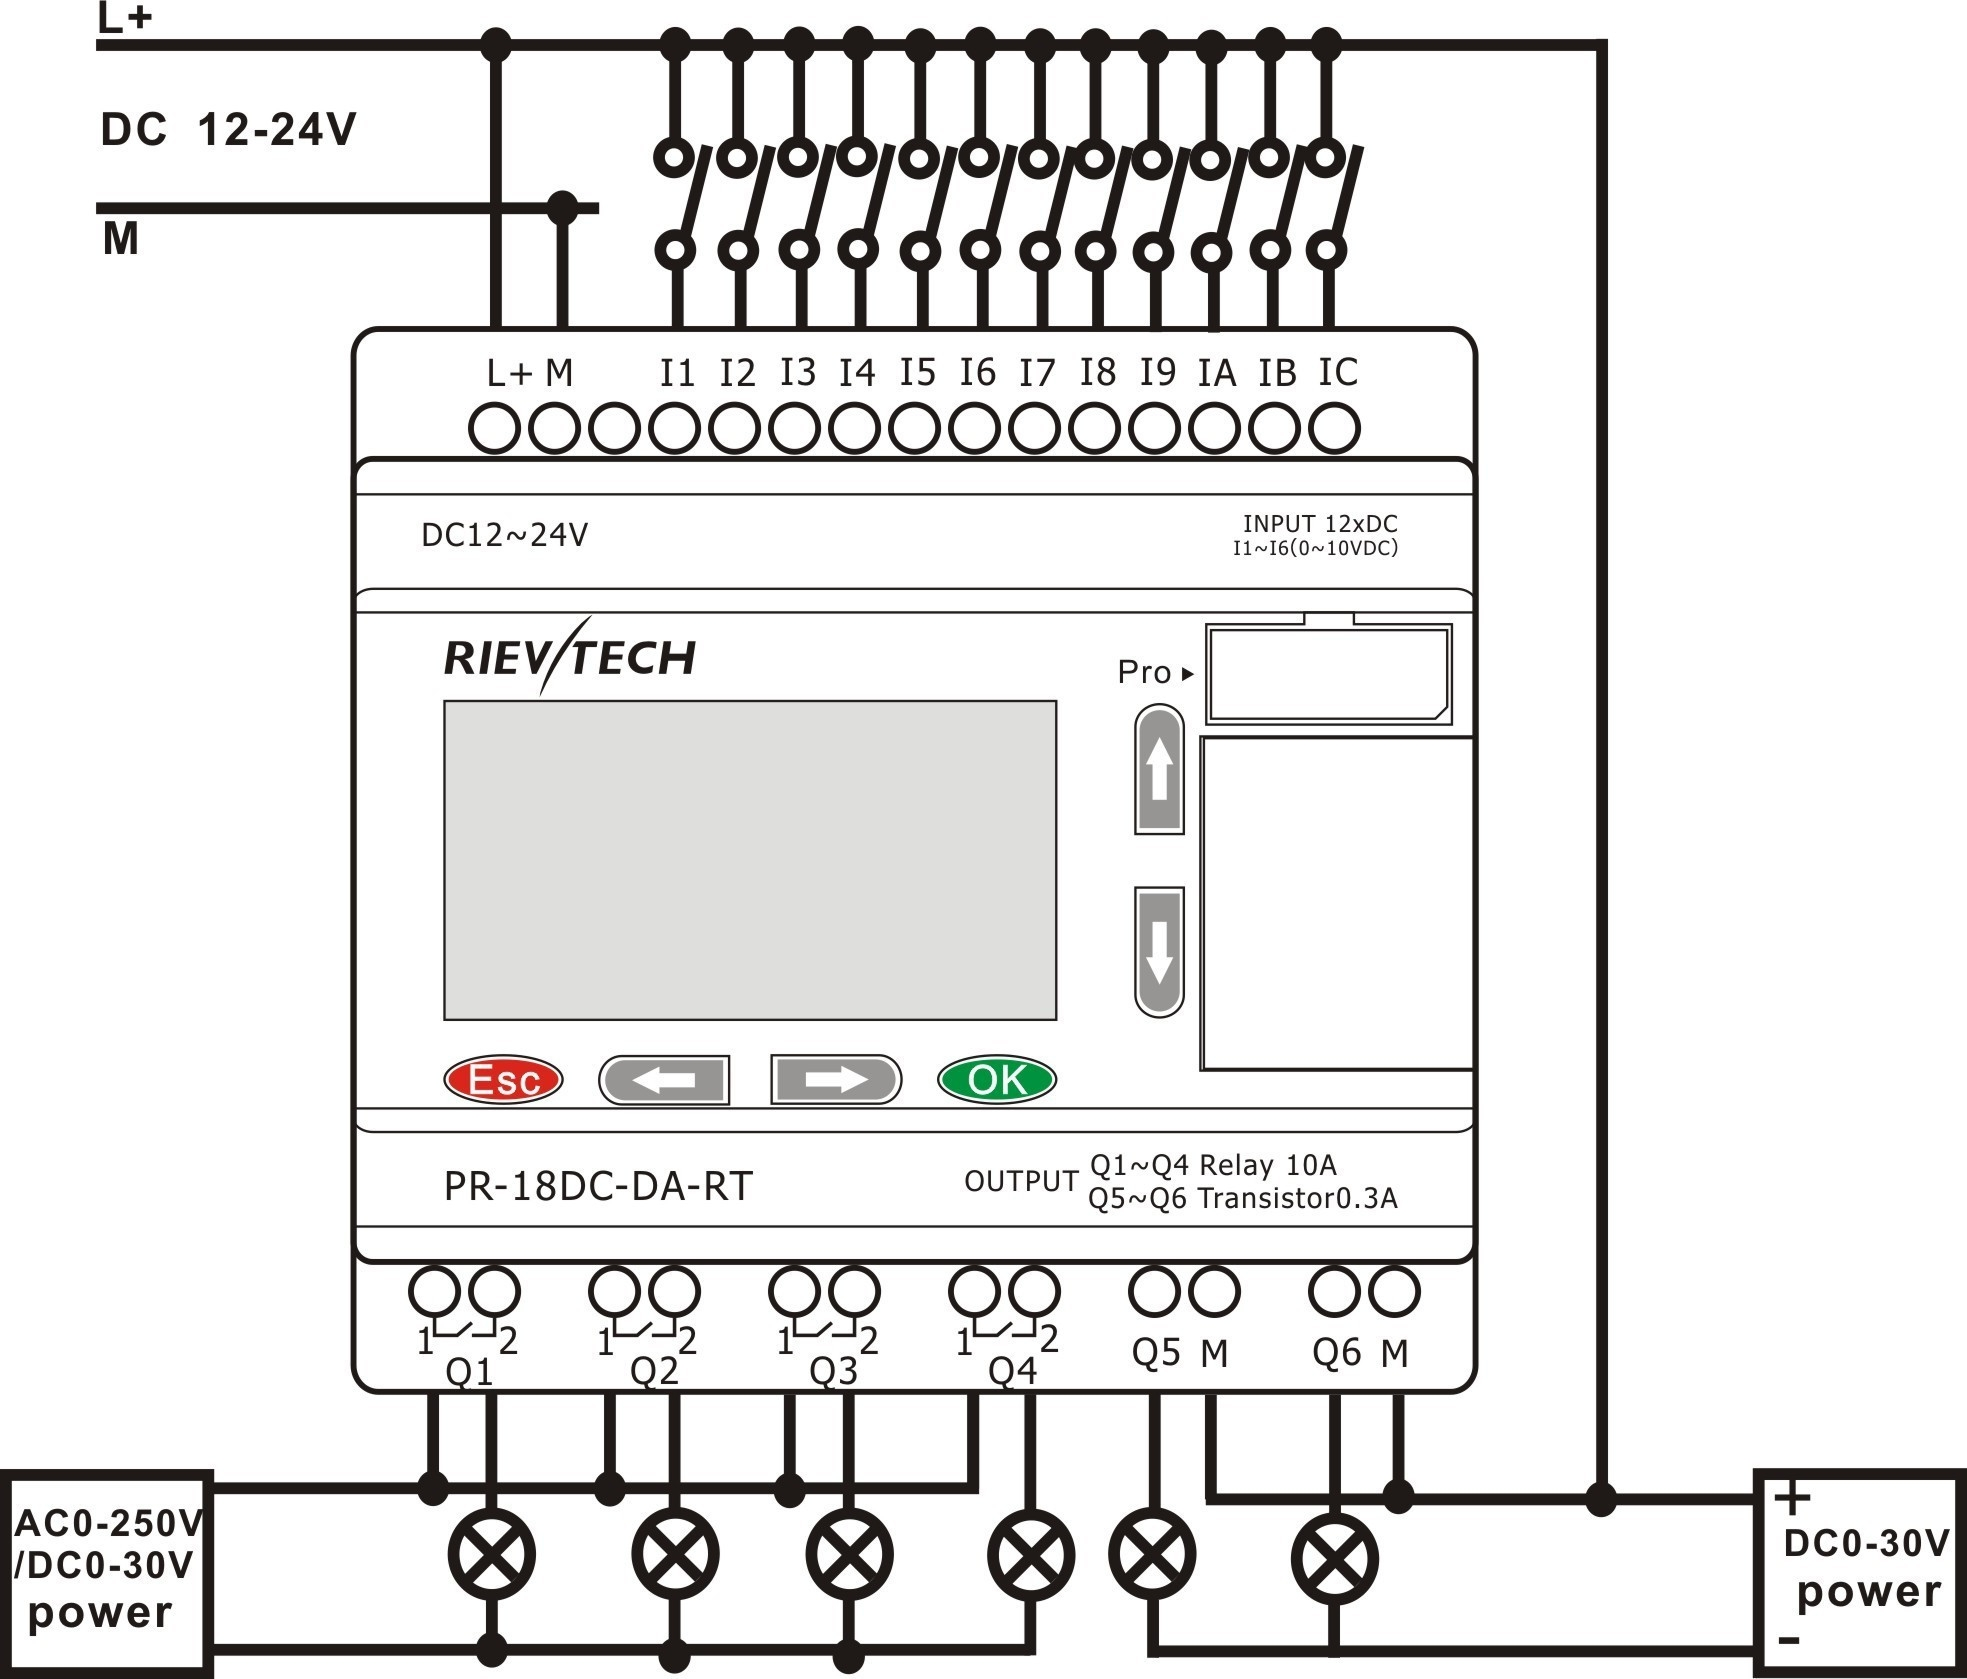 Plc Wiring Diagram - More Wiring Diagram